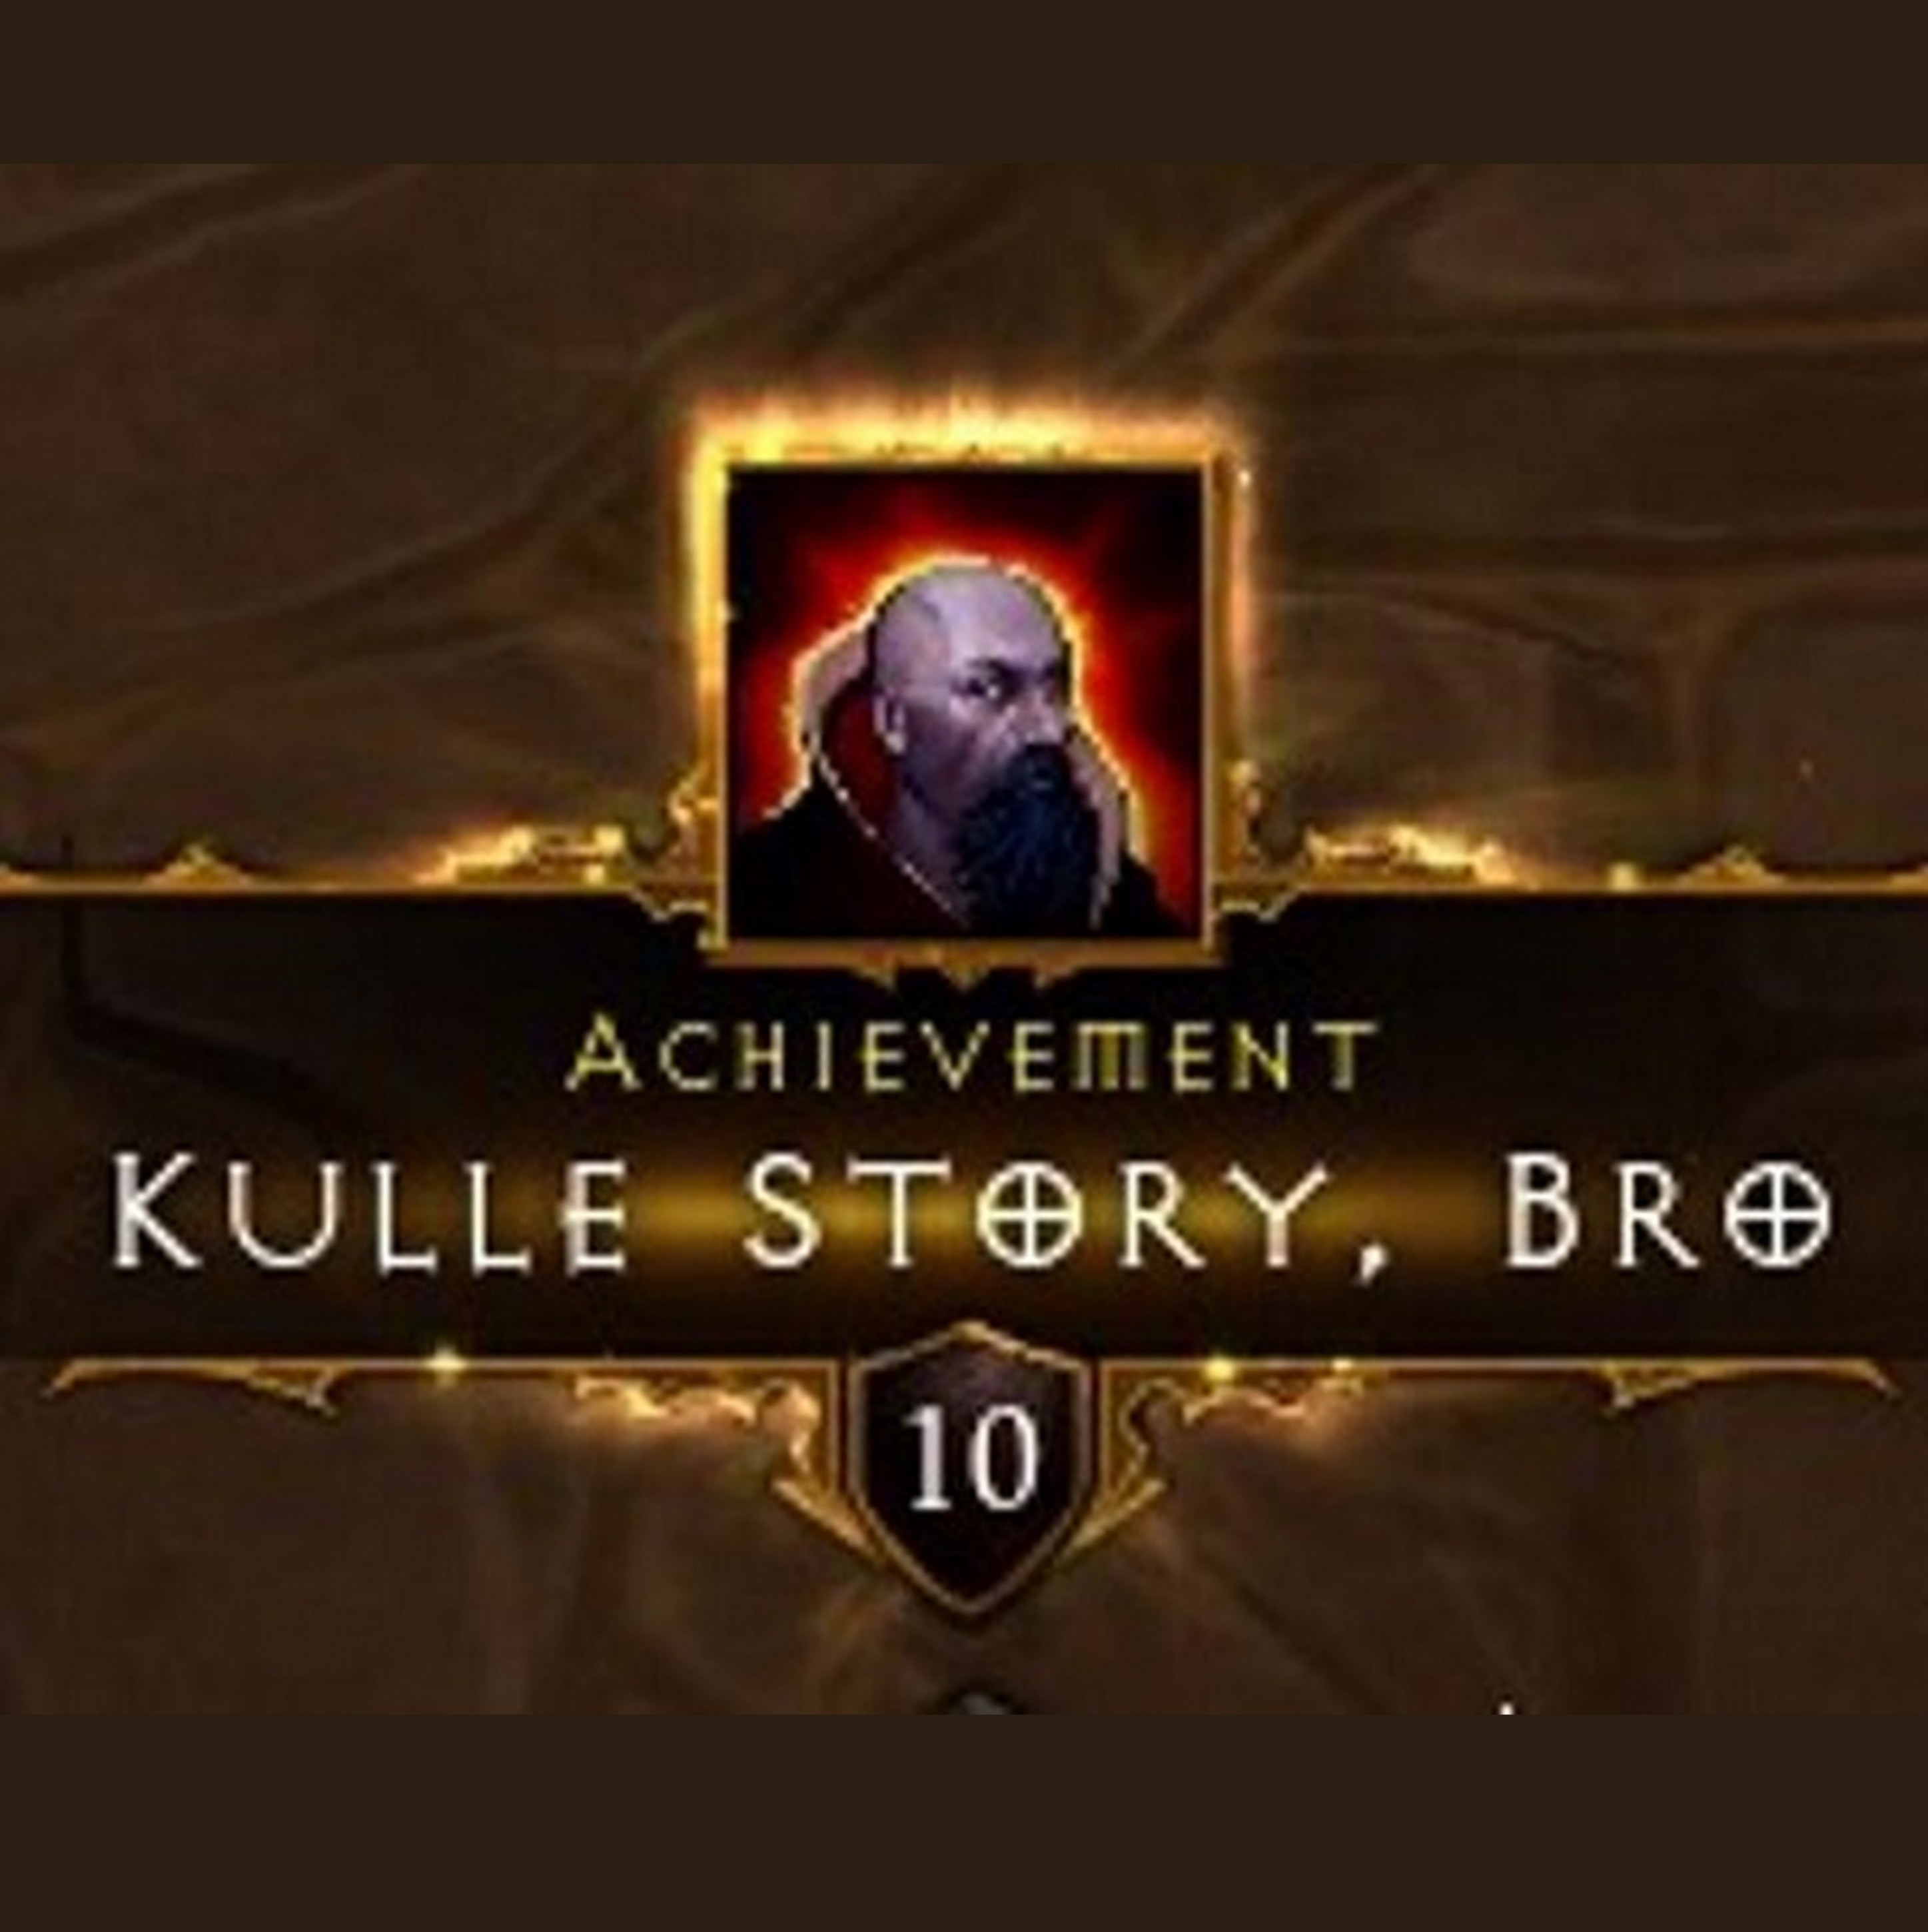 Kulle Story Bro - A Diablo 3 Podcast Episode 36